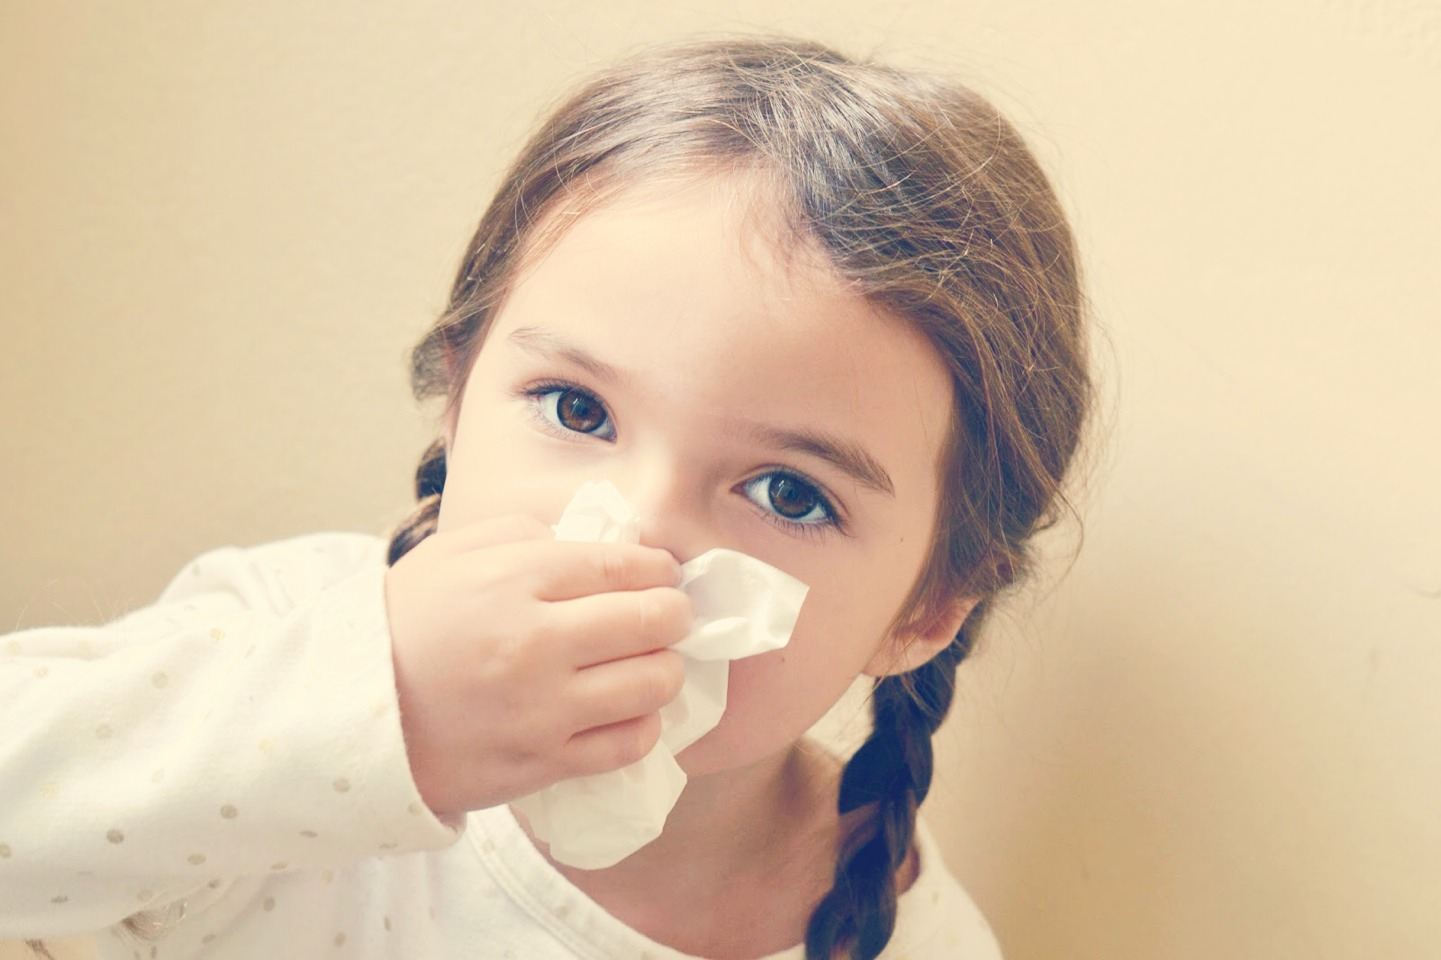 Easy Tip To Clear A Stuffy Nose! 👃  Trusper. What Are The Treatments For Psoriasis. Ac Service In San Antonio Fomc Press Release. Credit Card Processing Flow Chart. Travelers Health Insurance Reviews. Phoenix Saloon New Braunfels. Ten Usability Heuristics Glass Repair Phoenix. Air Nz Airpoints Credit Card. American University Switzerland